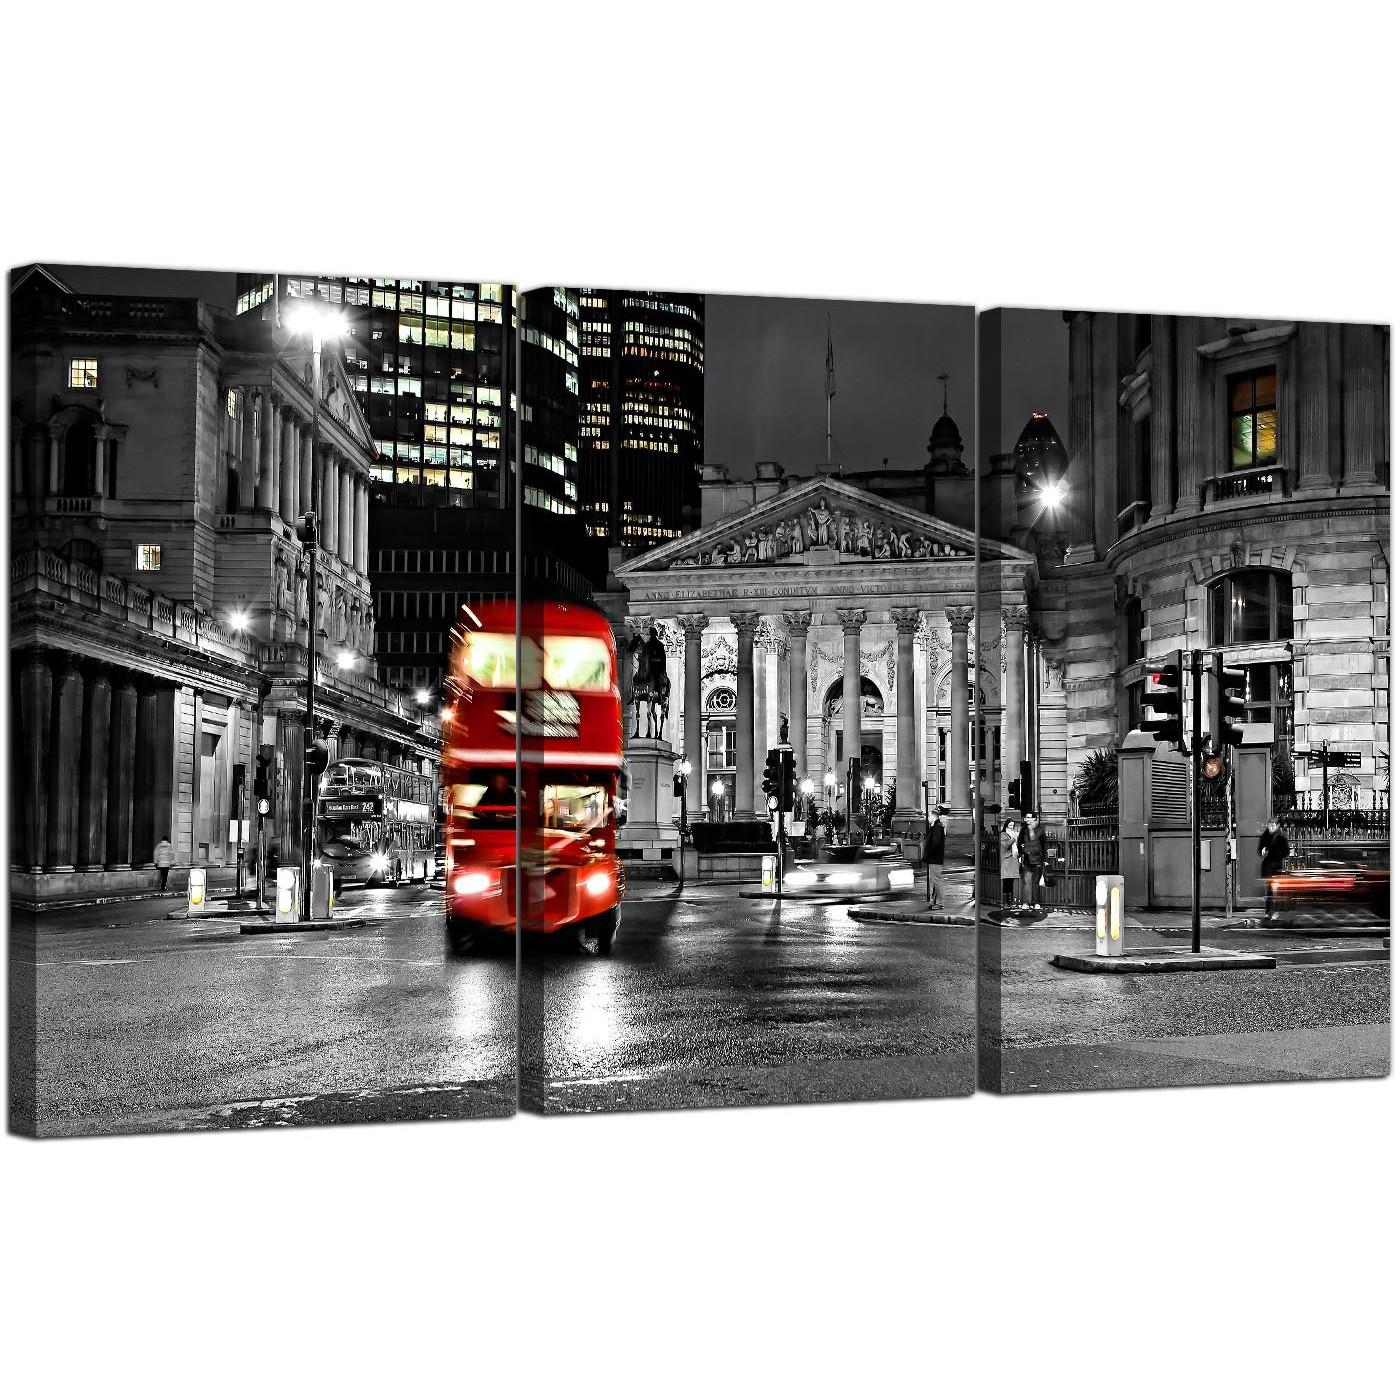 Merveilleux Featured Image Of London Scene Wall Art